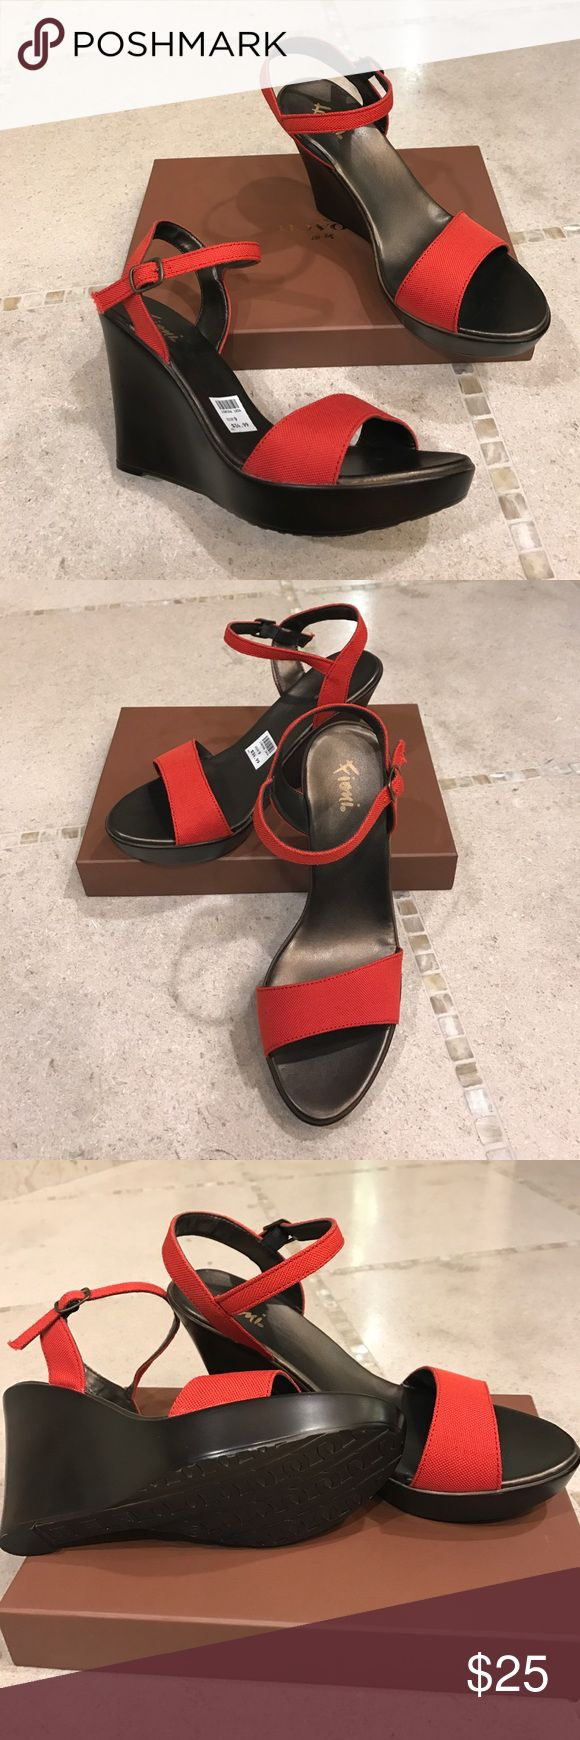 Fioni wedges 👠 Brand new, tags attached, ladies wedge sandals in beautiful color. It is by Fioni, in ladies size 9. This would be one of the most chic and comfortable shoes you would own... Fioni Shoes Sandals